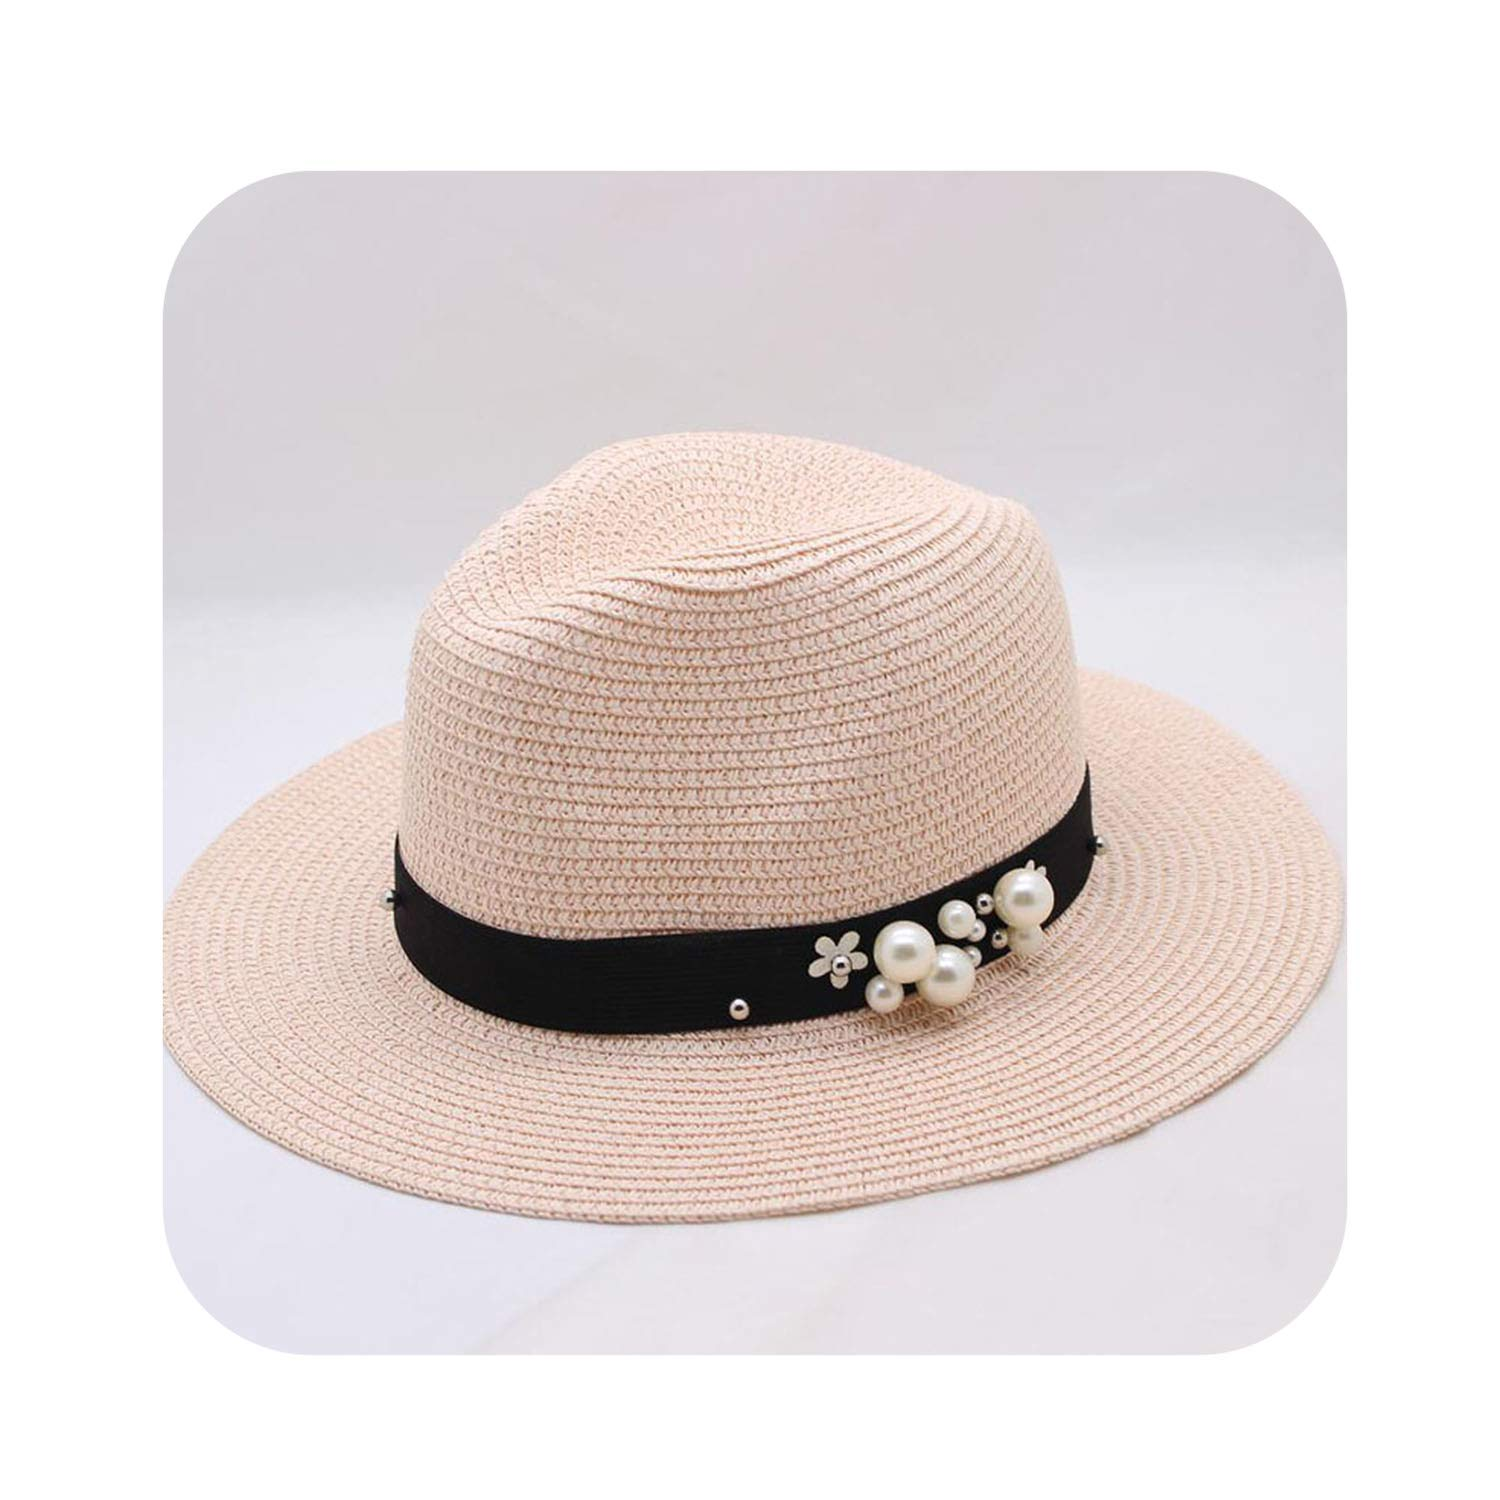 Pink Flower Beads WideBrimmed Jazz Panama Hat Chapeu Feminino Sun Predection Beach Cap